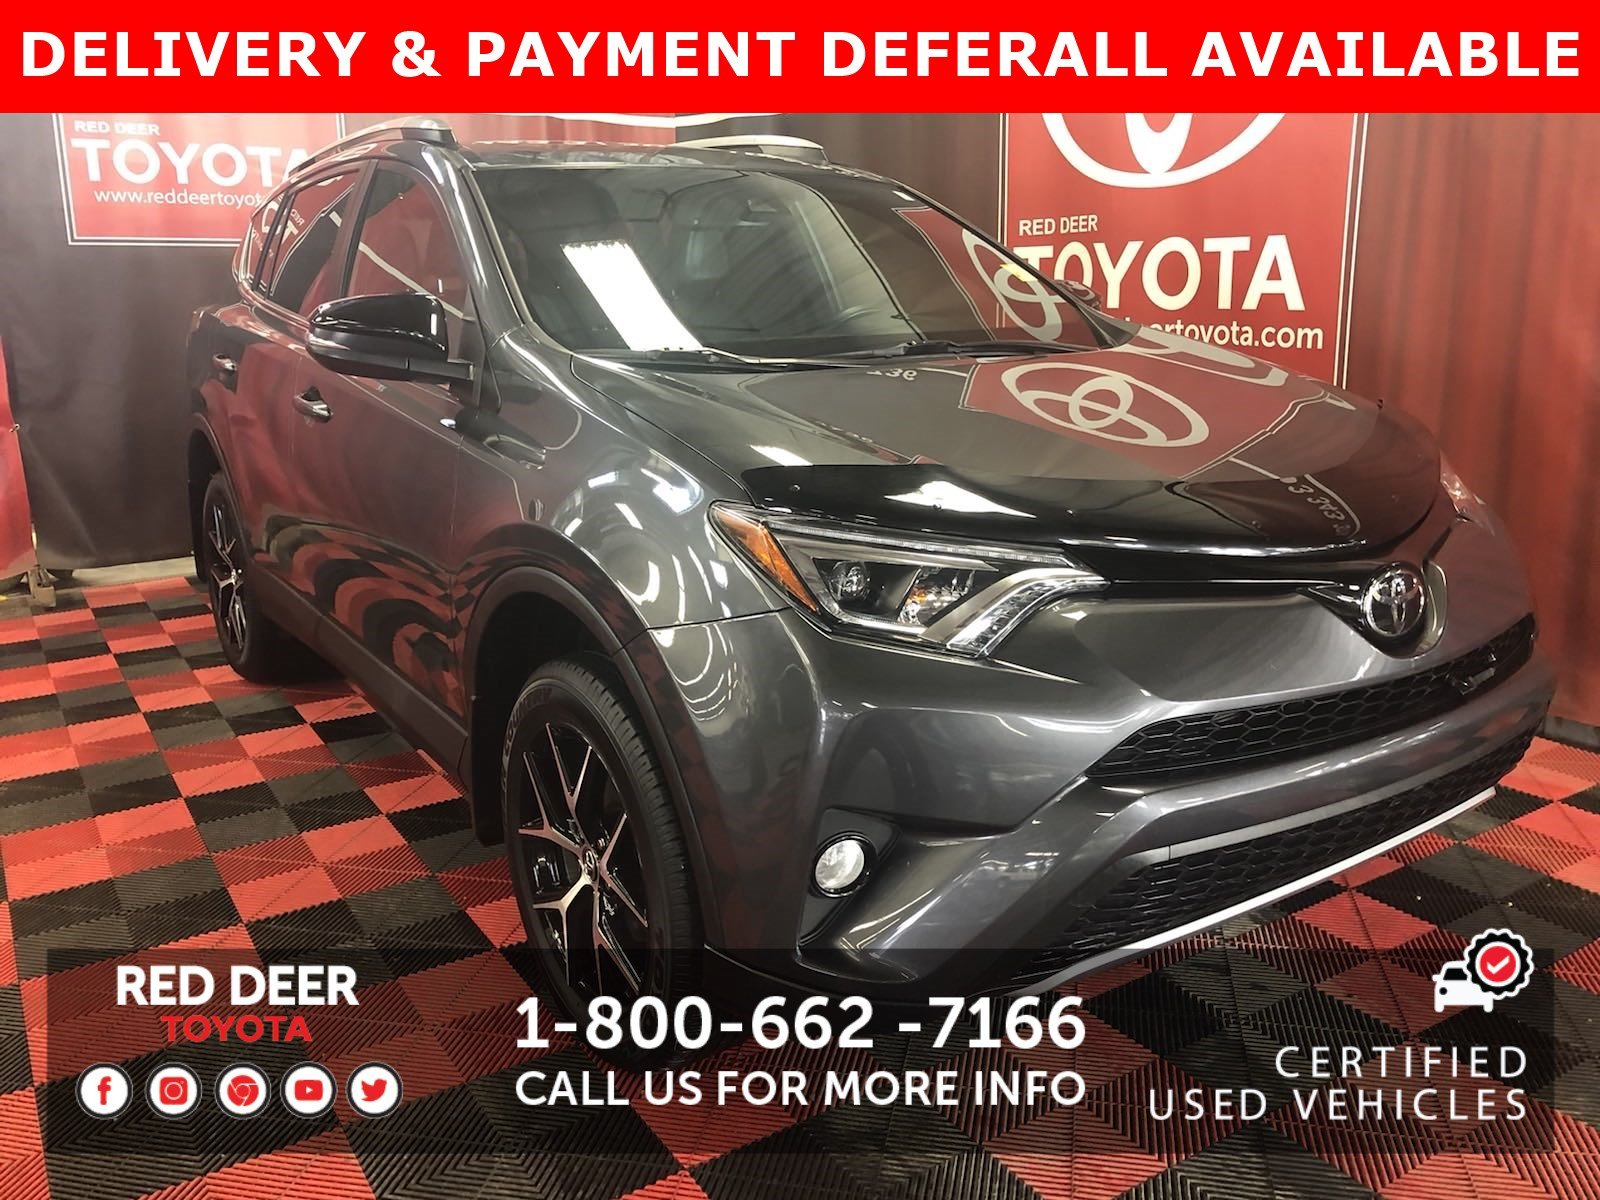 Certified Pre-Owned 2017 Toyota RAV4 SE - SAVE THE GST!